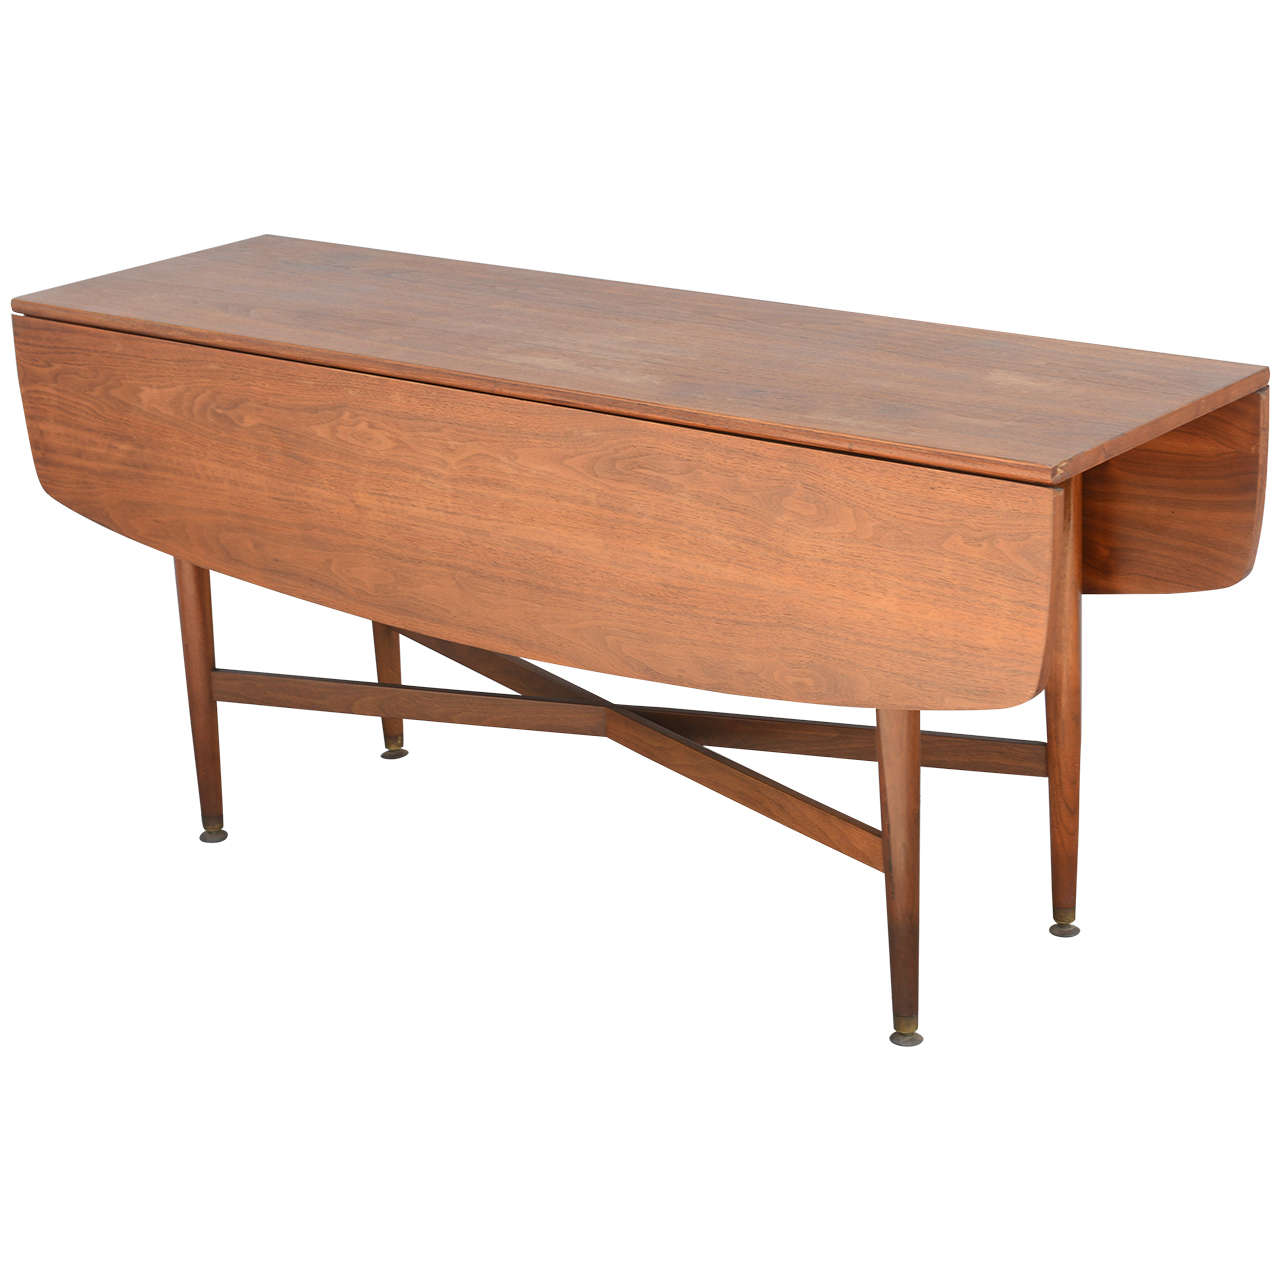 Teak drop leaf dining or console table danish 1960s at for Drop leaf dining table